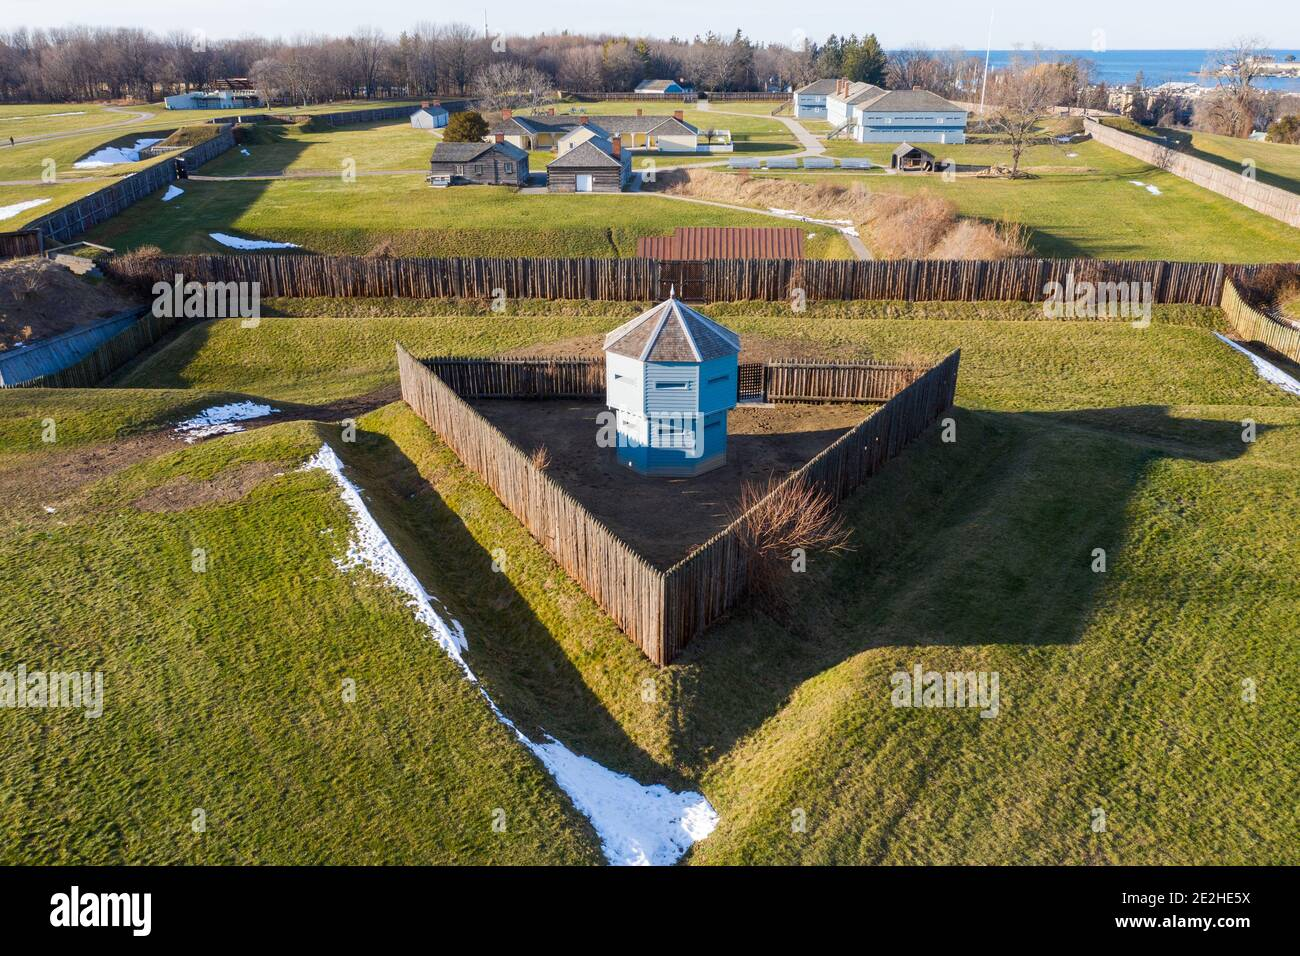 Fort George National Historic Site, Niagara-on-the-Lake, Ontario, Canadá Foto de stock